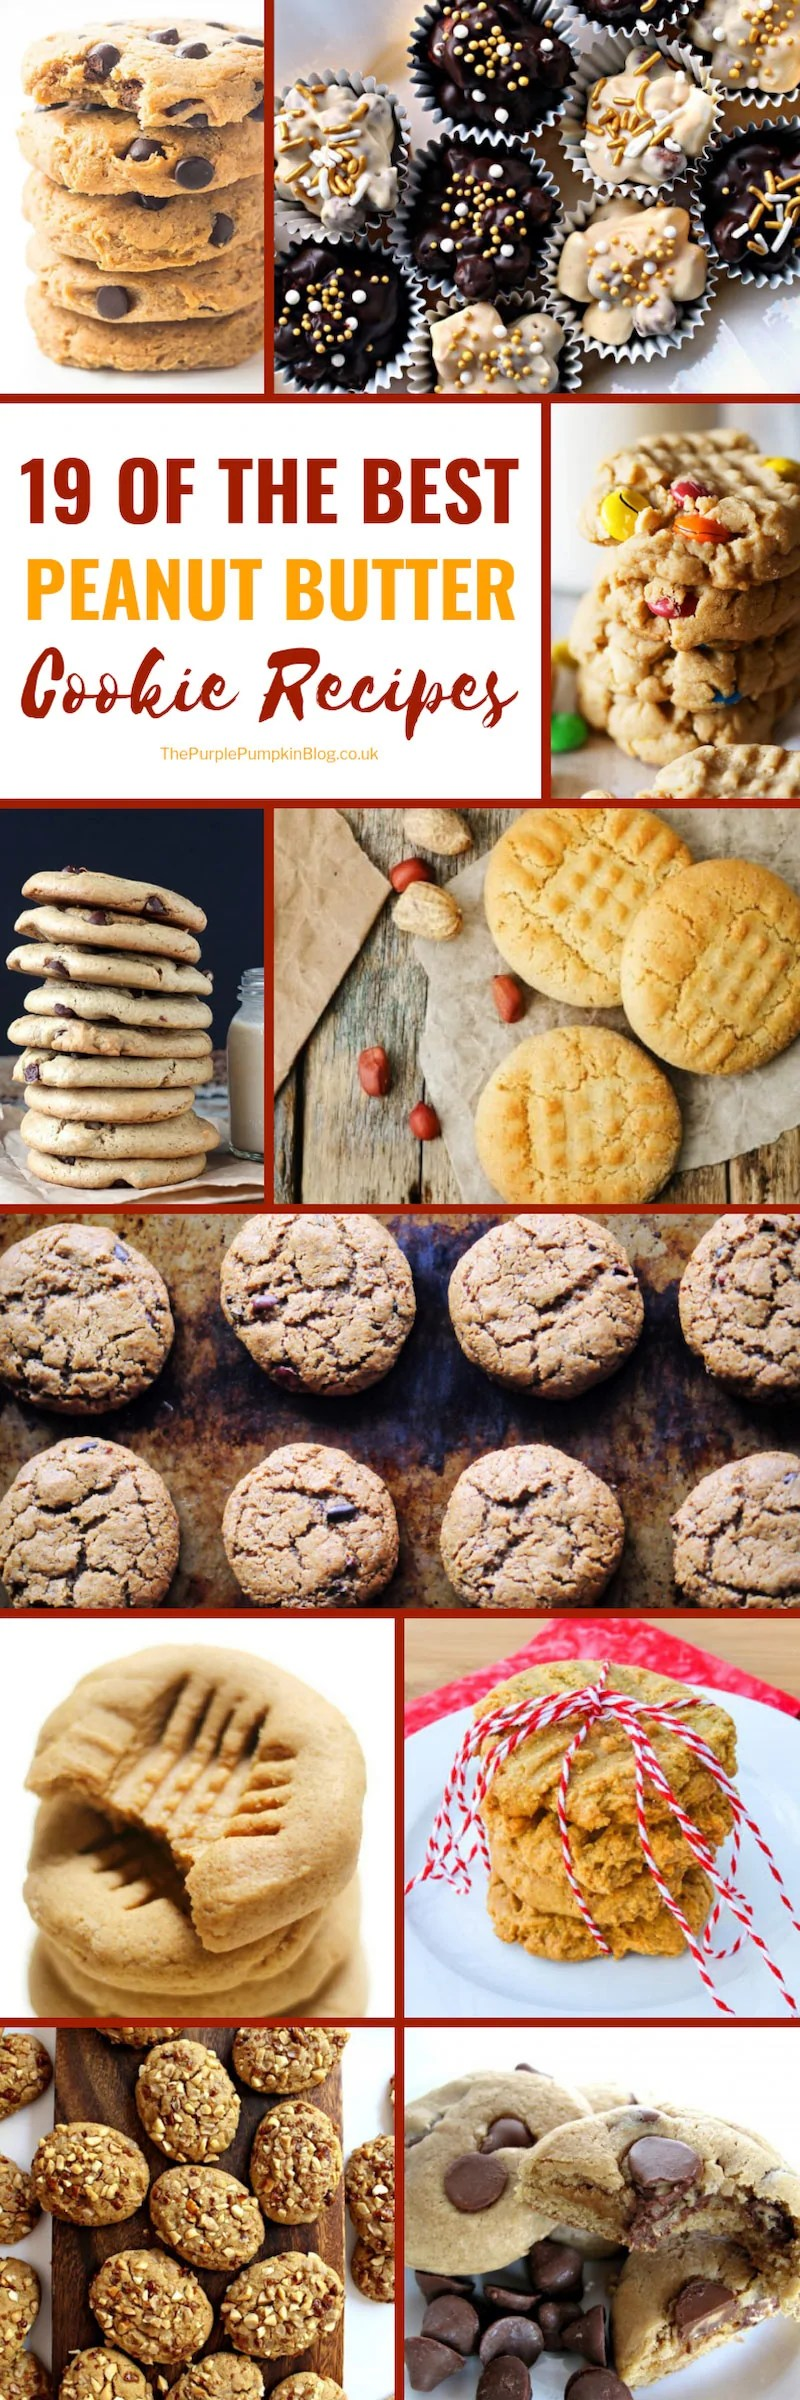 There is no denying that peanut butter is awesome, but put it into cookies and that is a match made in heaven! Here are 19 of the Best Peanut Butter Cookie Recipes, which include low carb, keto and no-bake peanut butter cookies; as well as recipes including oatmeal, chocolate, and toffee - yummy! #PeanutButterCookies #PeanutButterCookieRecipes